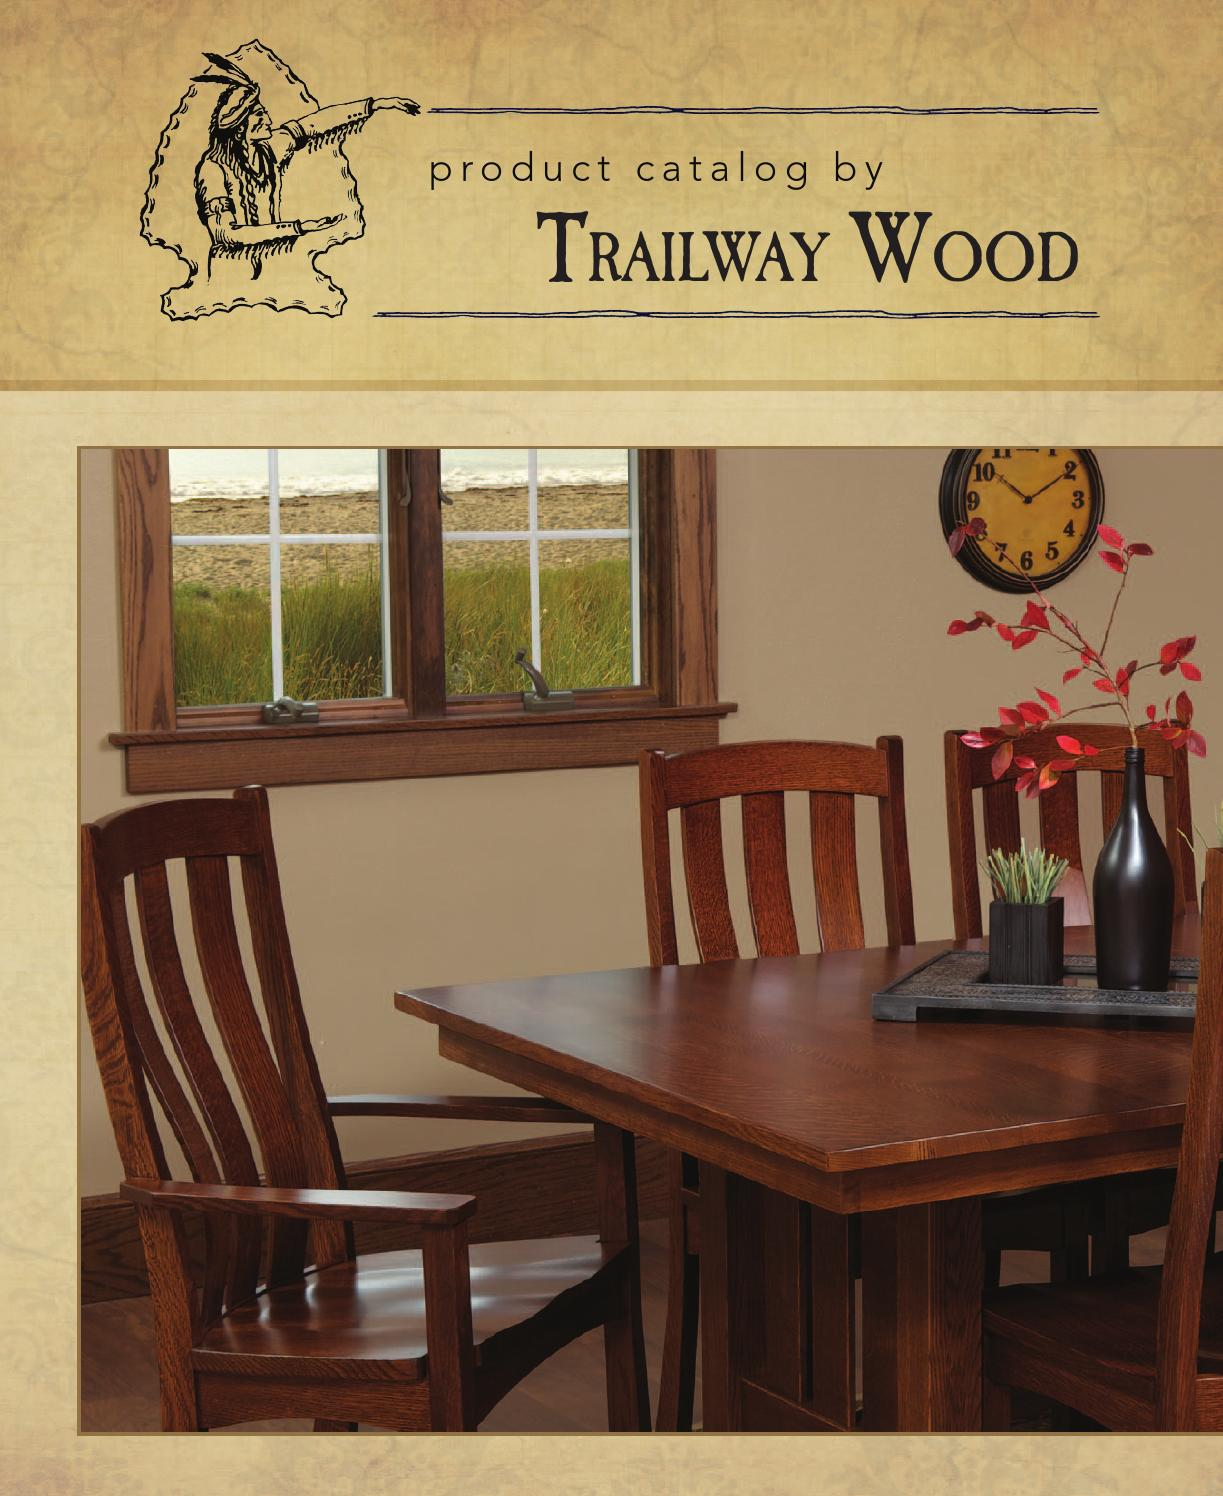 2011 Trailway Wood Catalog / Tables And Chairs / E U0026 G Amish Furniture By E  U0026 G Amish Furniture   Issuu